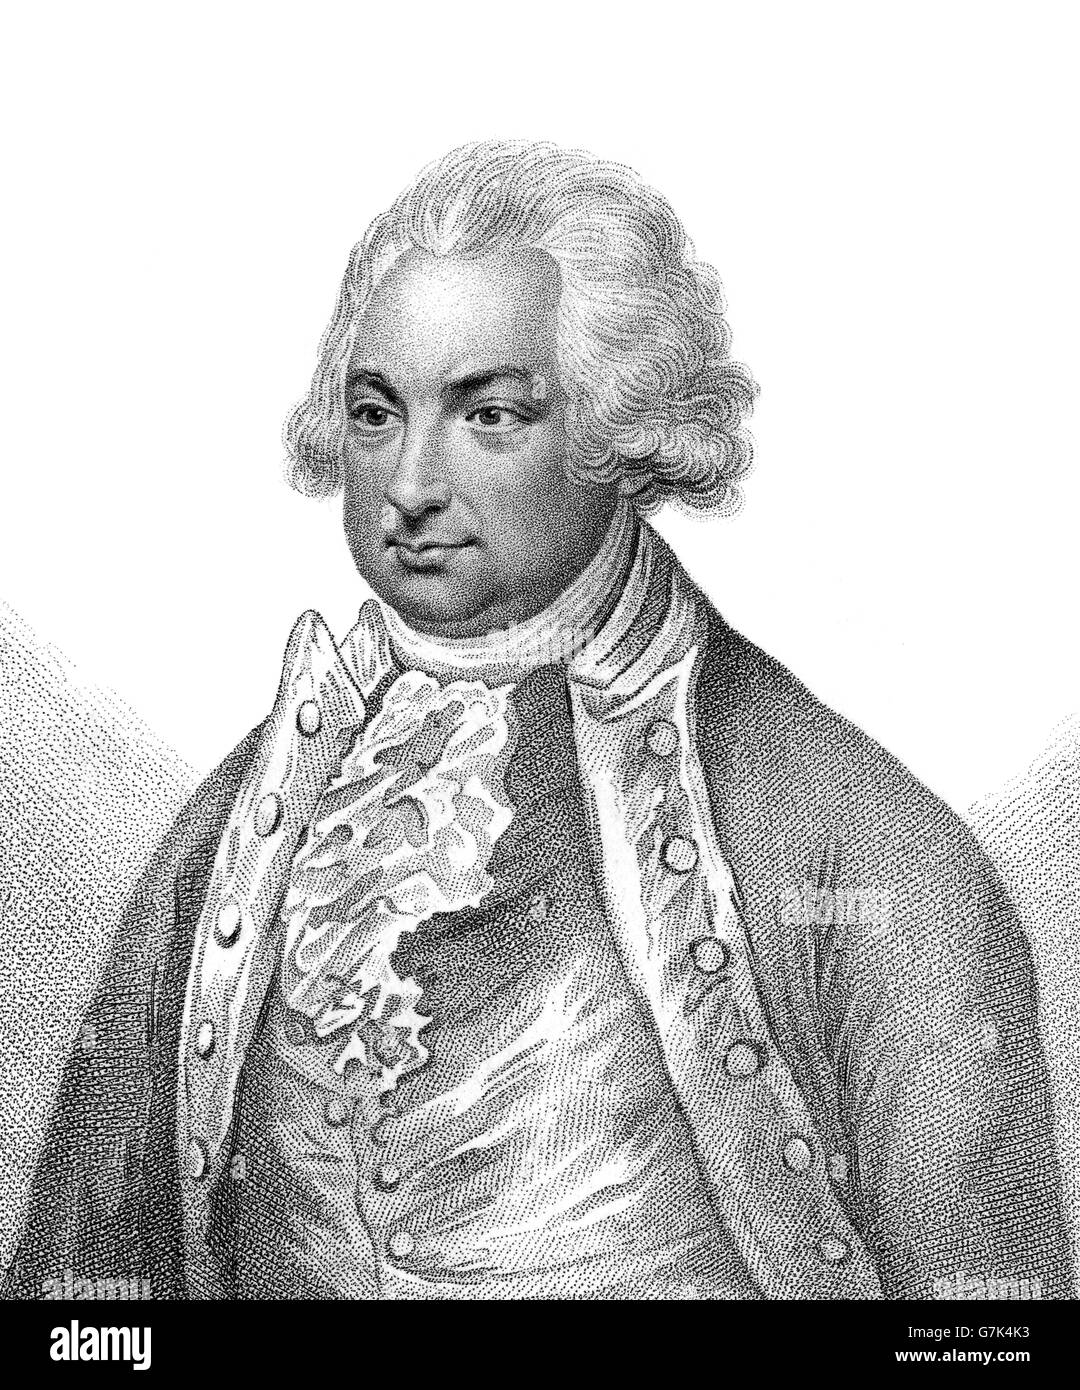 Constantine John Phipps, 2nd Baron Mulgrave, 1744-1792, an English explorer and officer in the Royal Navy - Stock Image